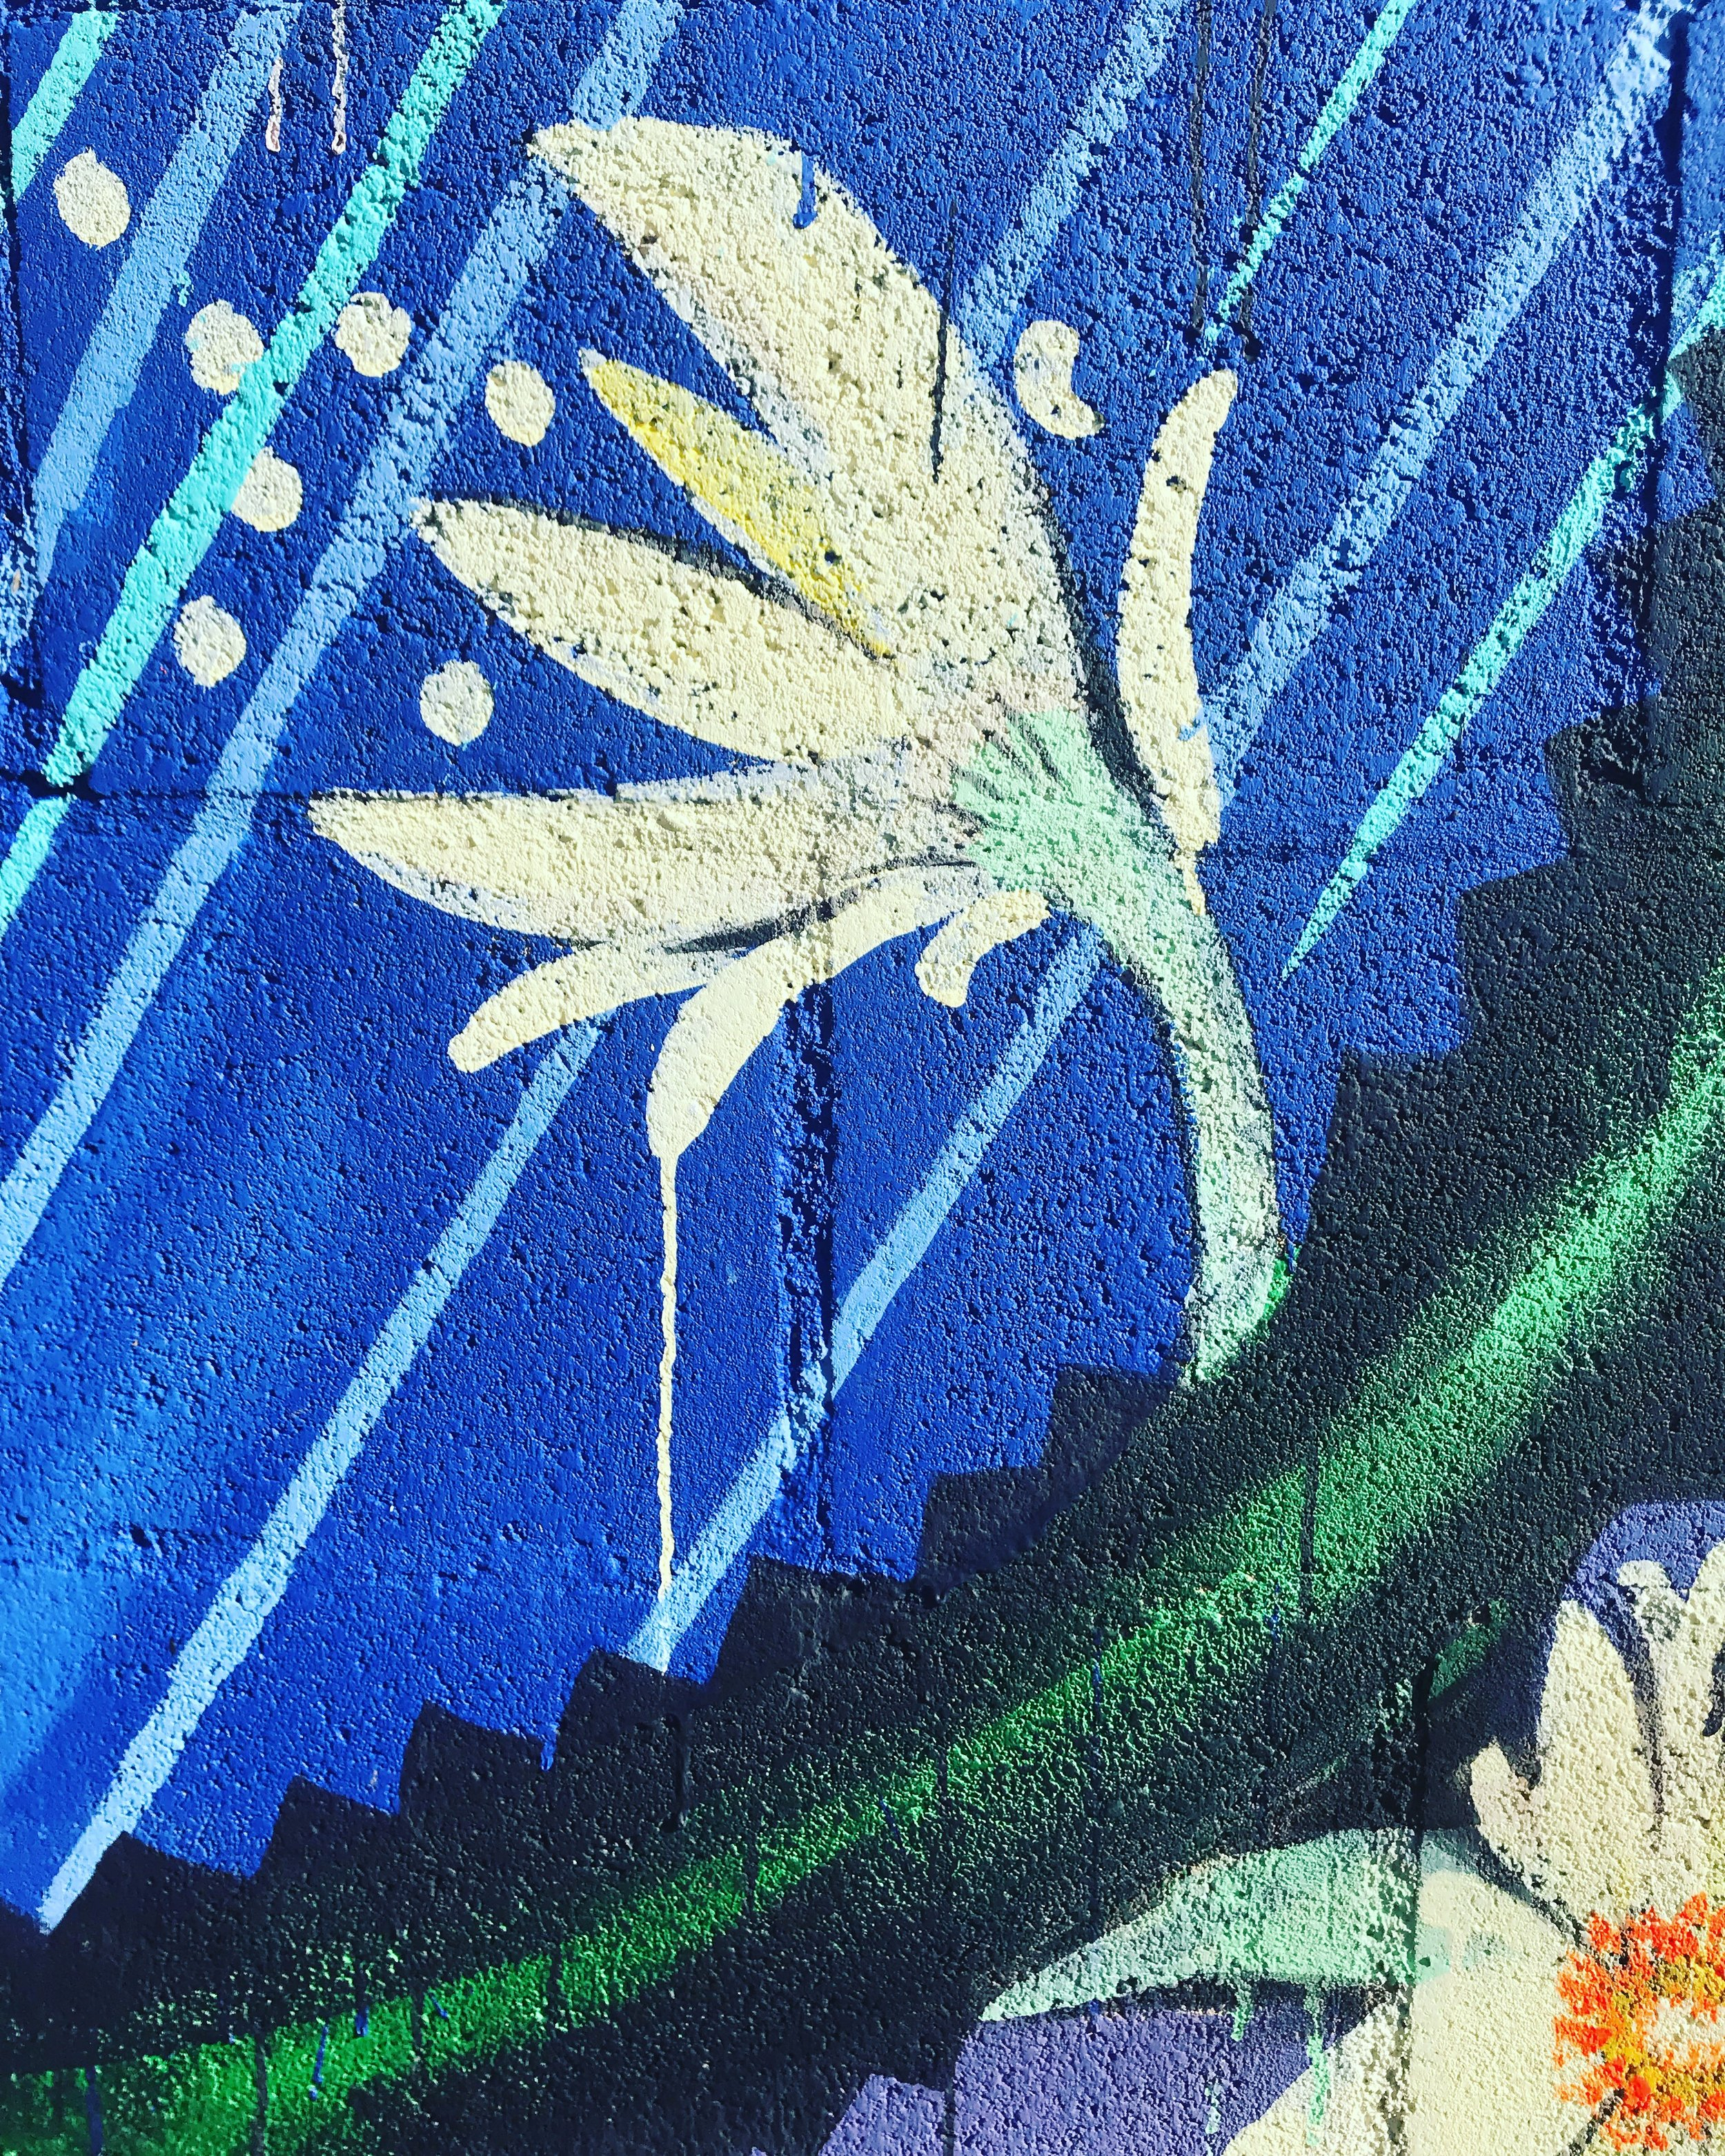 Detail from Moon Garden mural